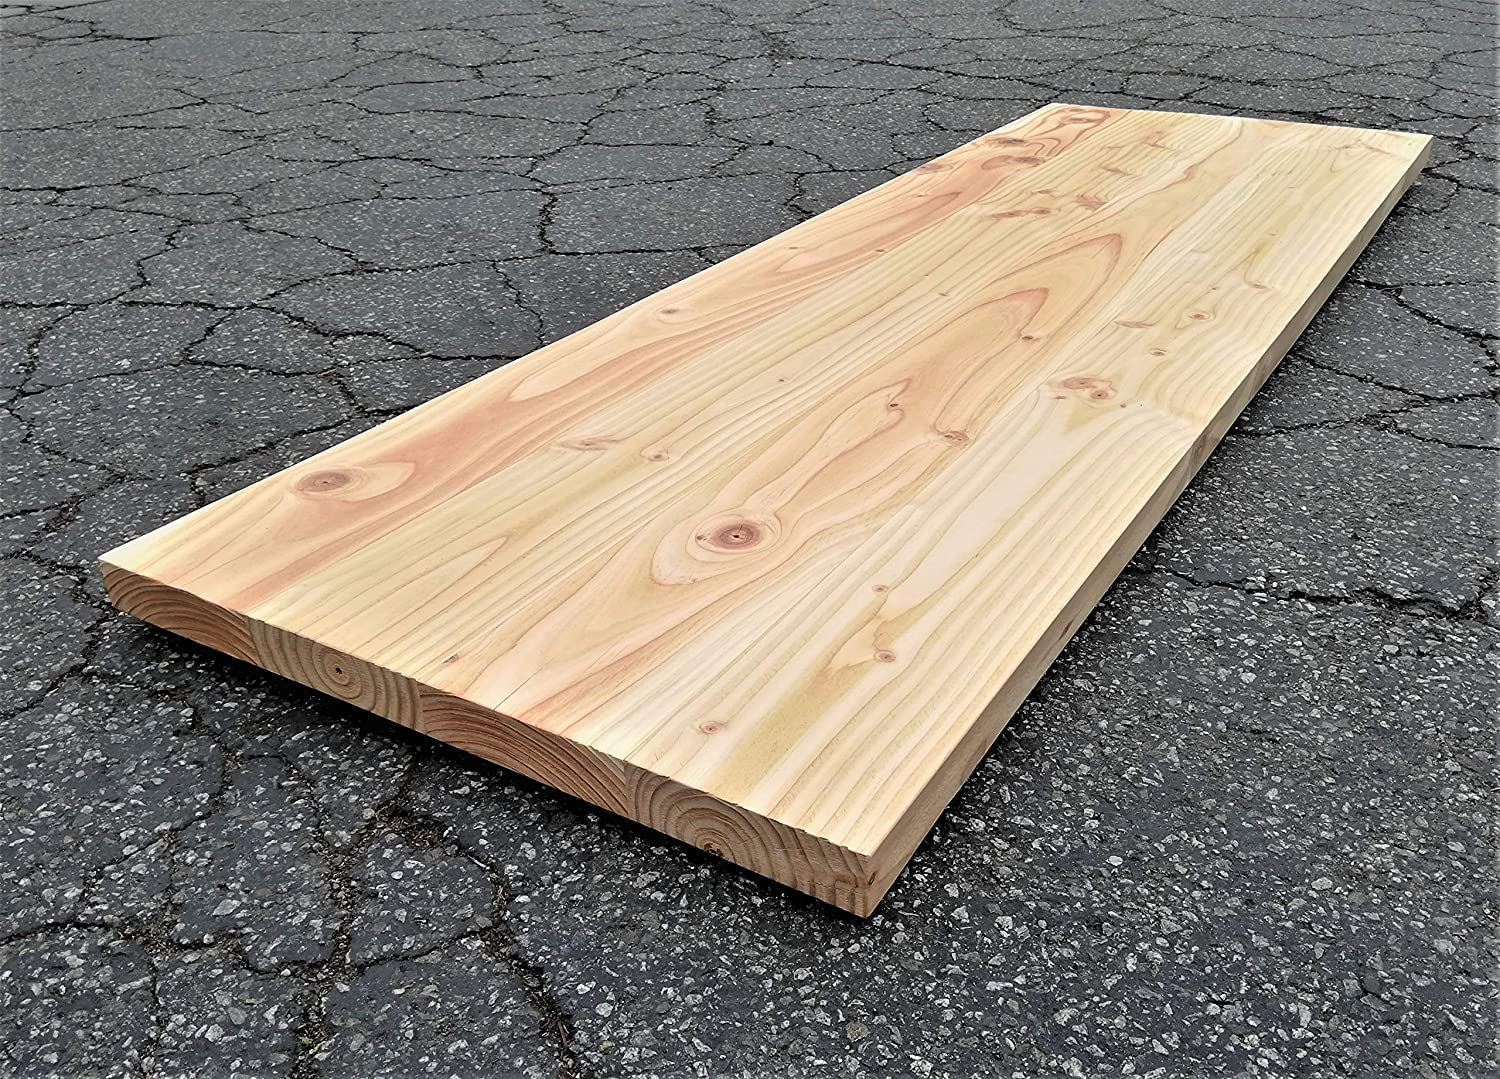 Amazon.com: Reclaimed table top 9x9x9.9 inch,Dining table top